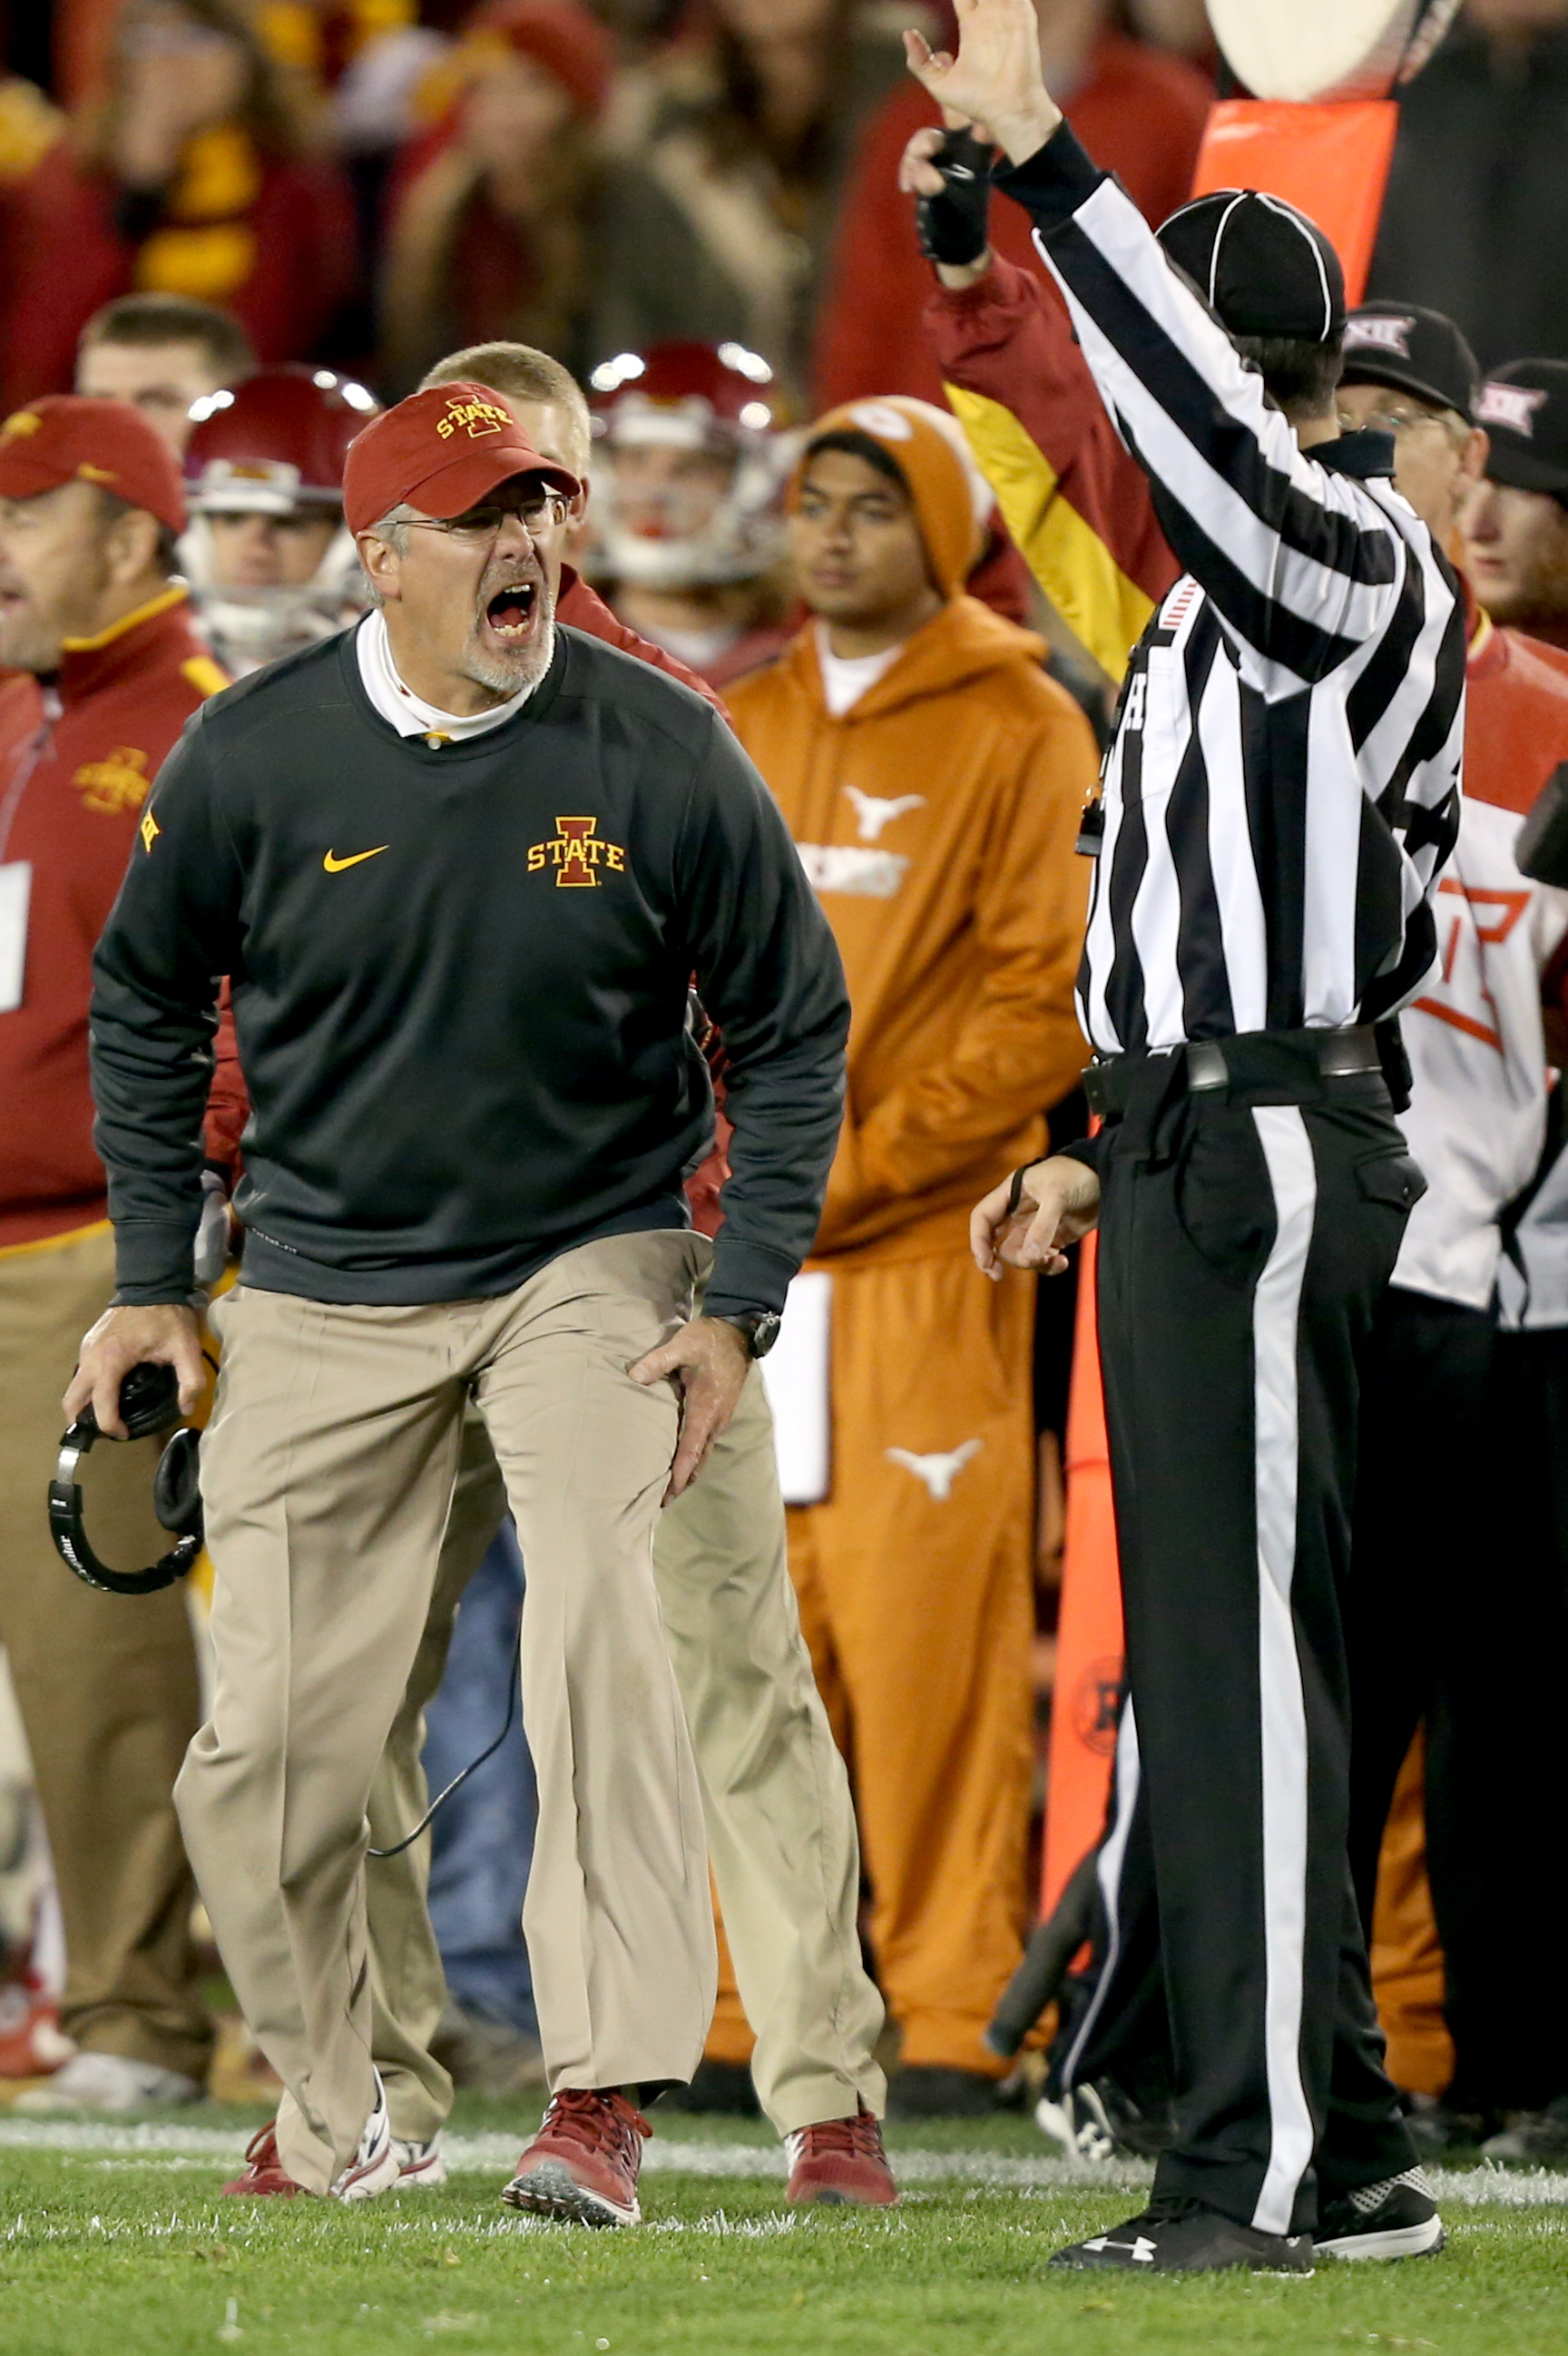 Iowa State head coach Paul Rhoads yells at an official after he thought a penalty should have been called on Texas during the second half of an NCAA college football game, Saturday, Oct. 31, 2015, in Ames, Iowa. Iowa State won 24-0. (AP Photo/Justin Haywo